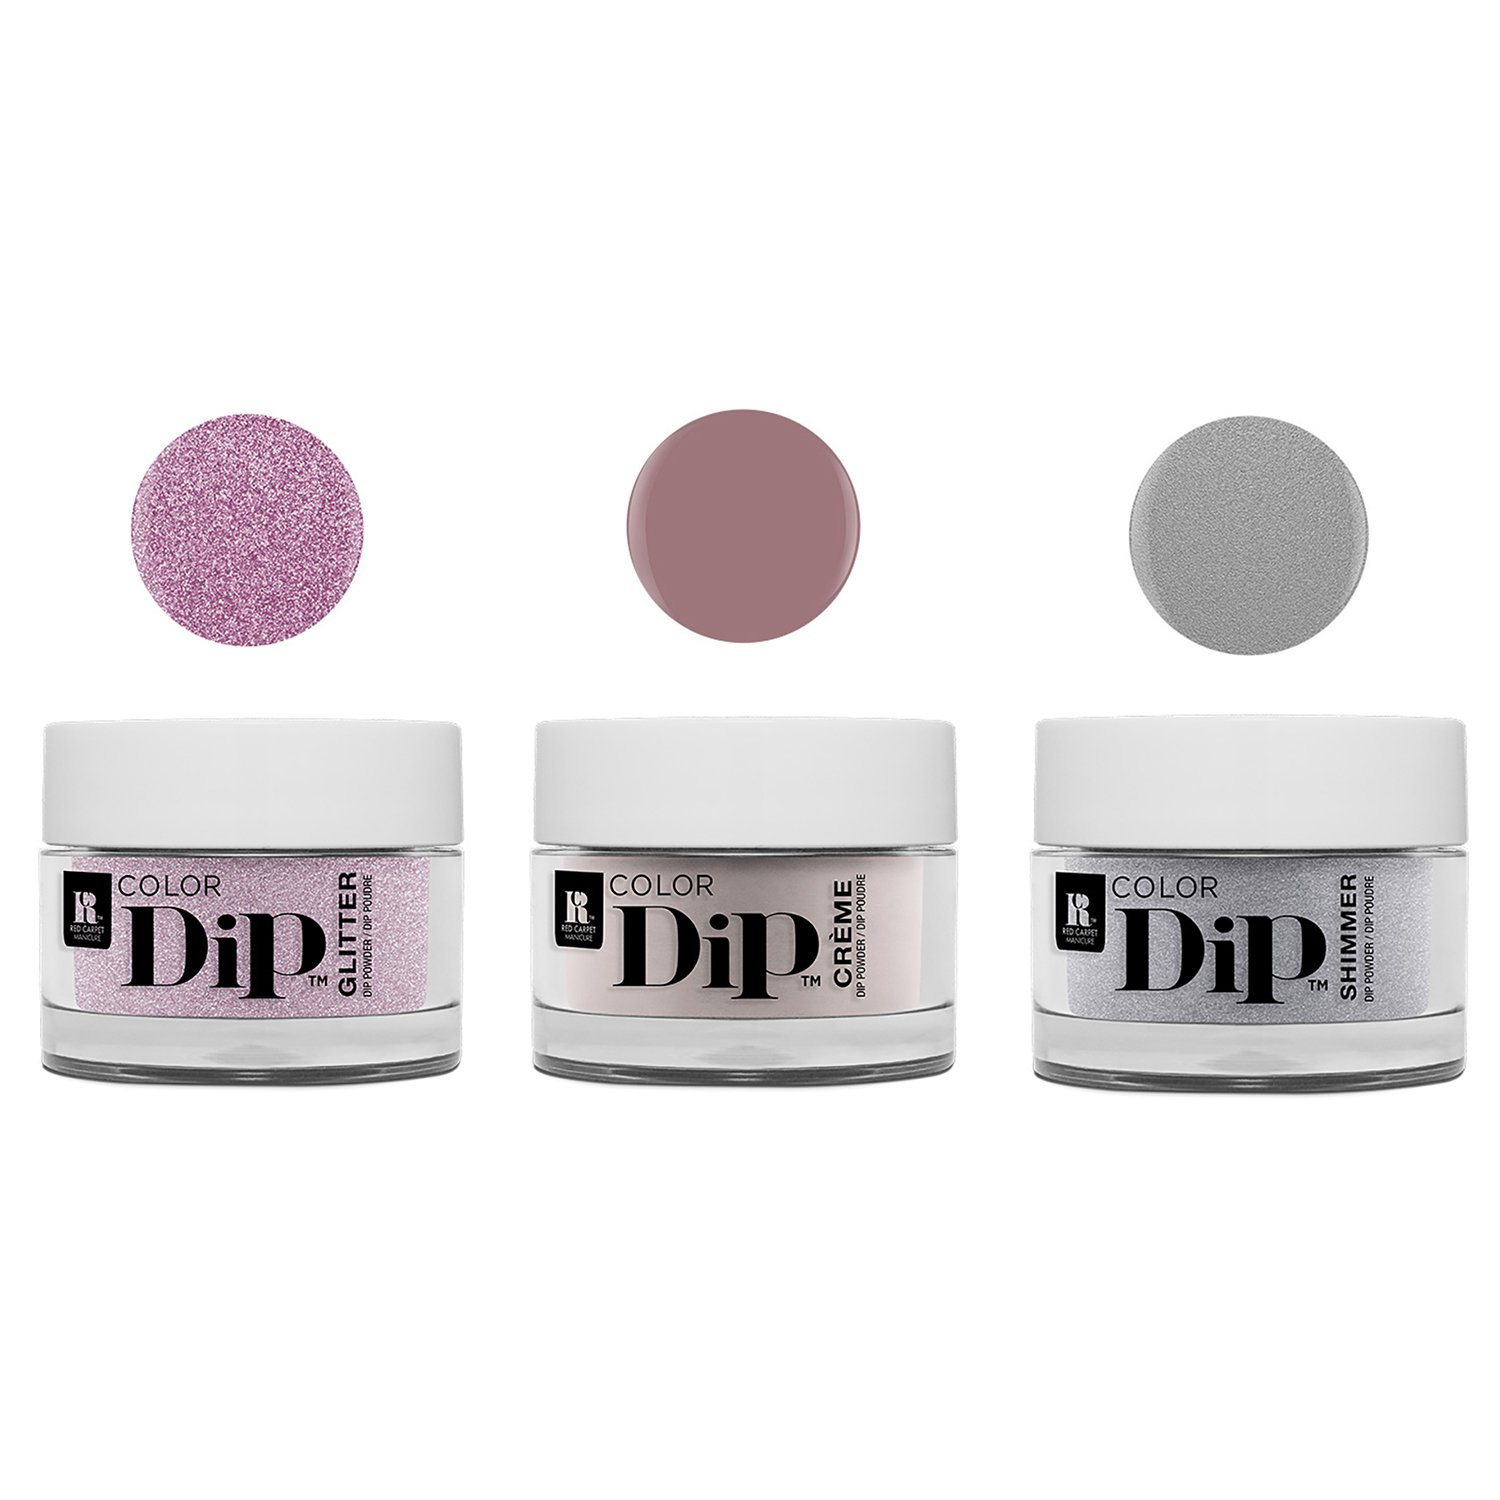 Red Carpet Manicure Color Dip Nail Dipping Powder Starter